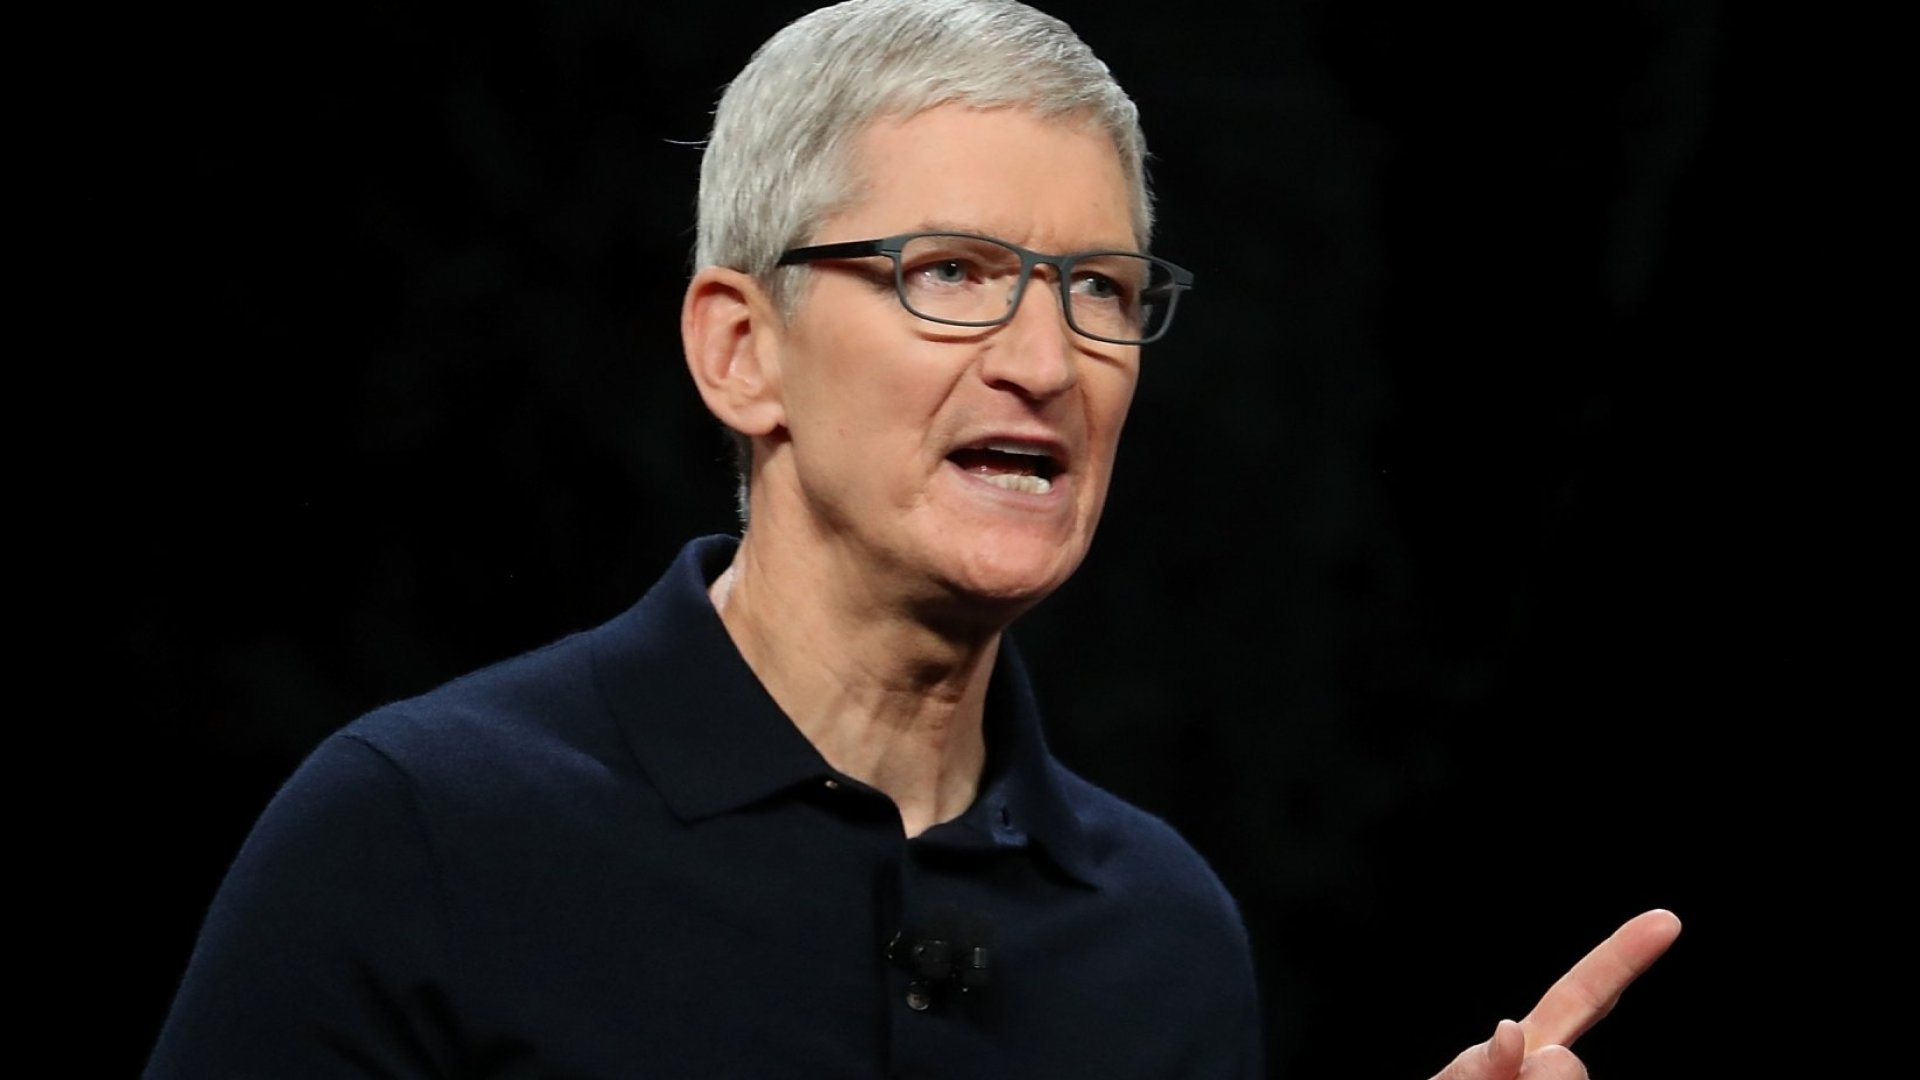 Tim Cook - Apple CEO - (Possibly telling someone not to talk about pay - but probably not...)